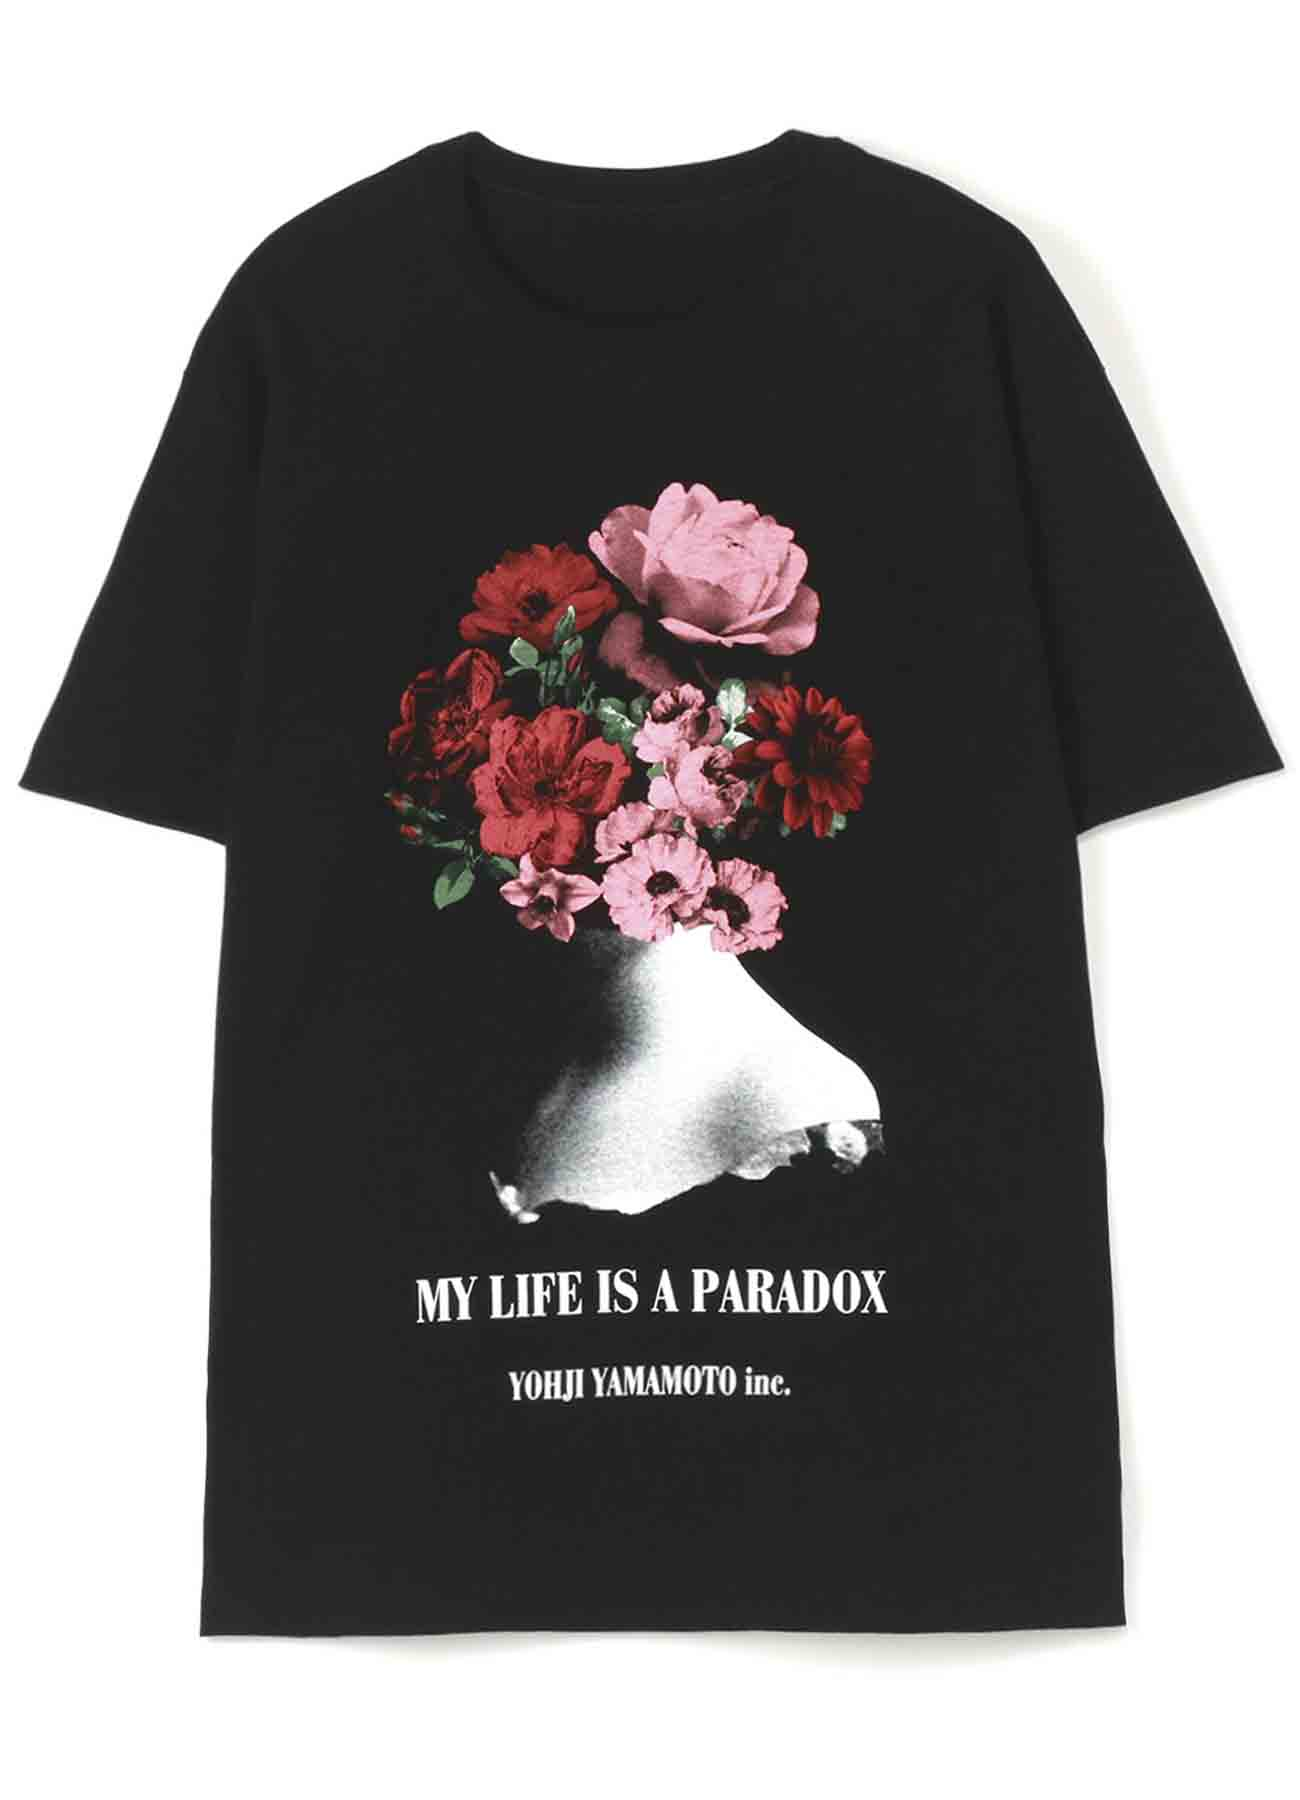 20/CottonJersey You are More Beautiful Than a Flower T-Shirt